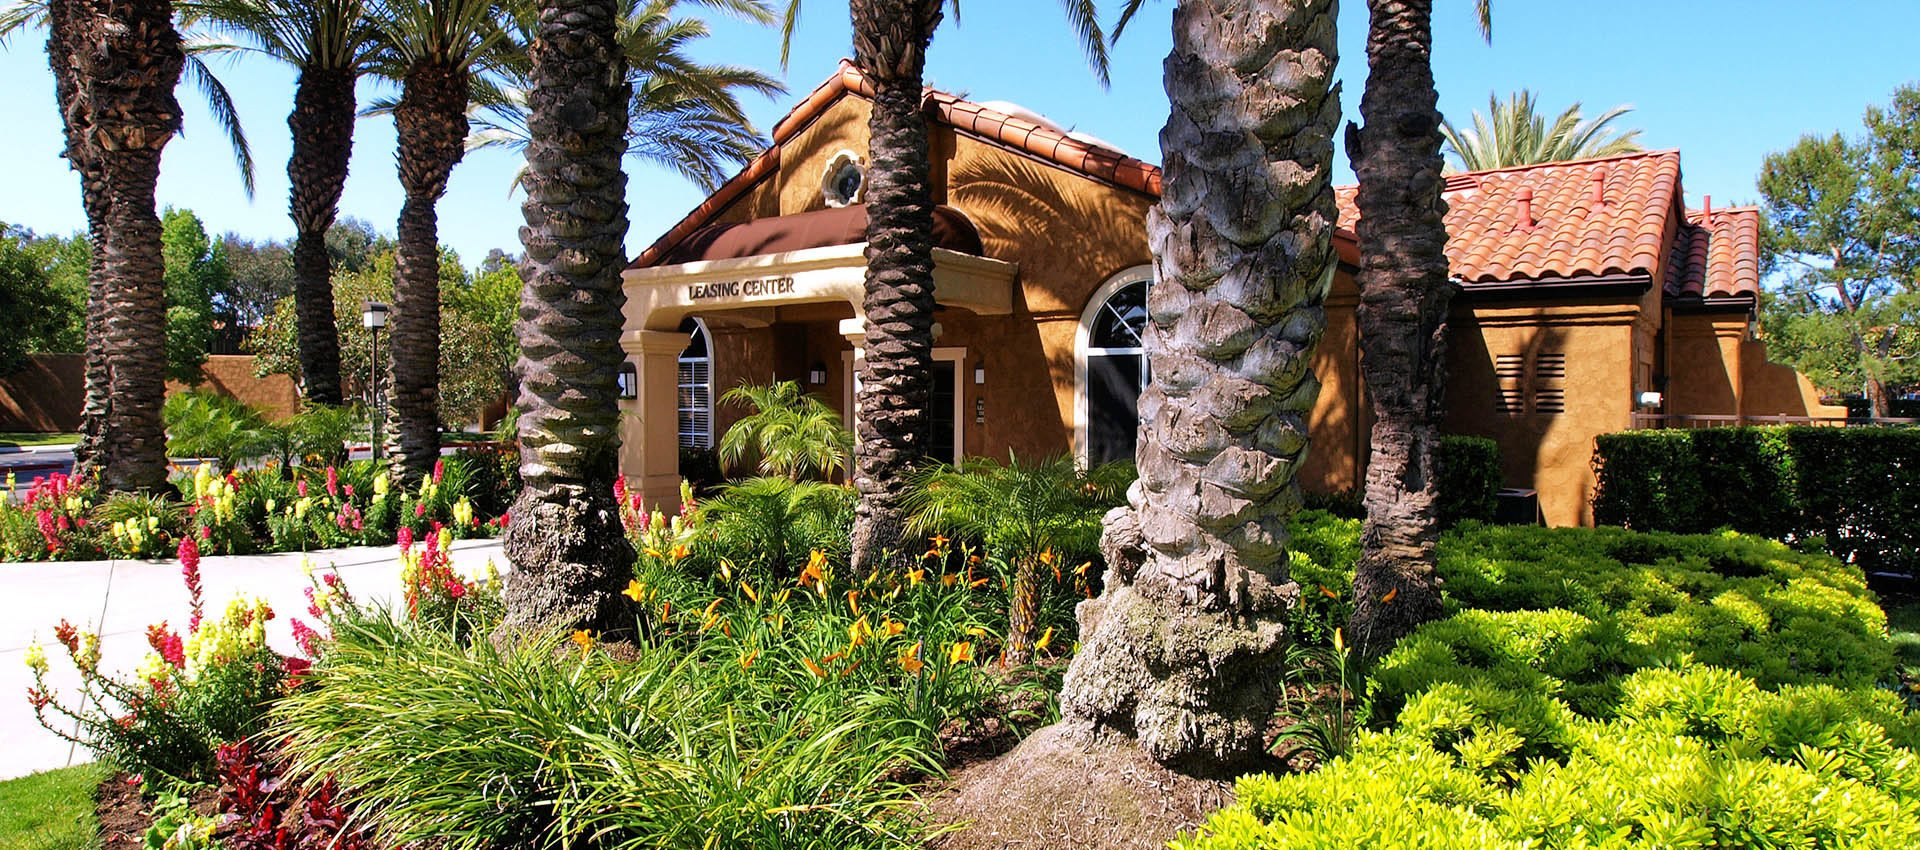 Clubhouse at Hidden Hills Condominium Rentals in Laguna Niguel, CA